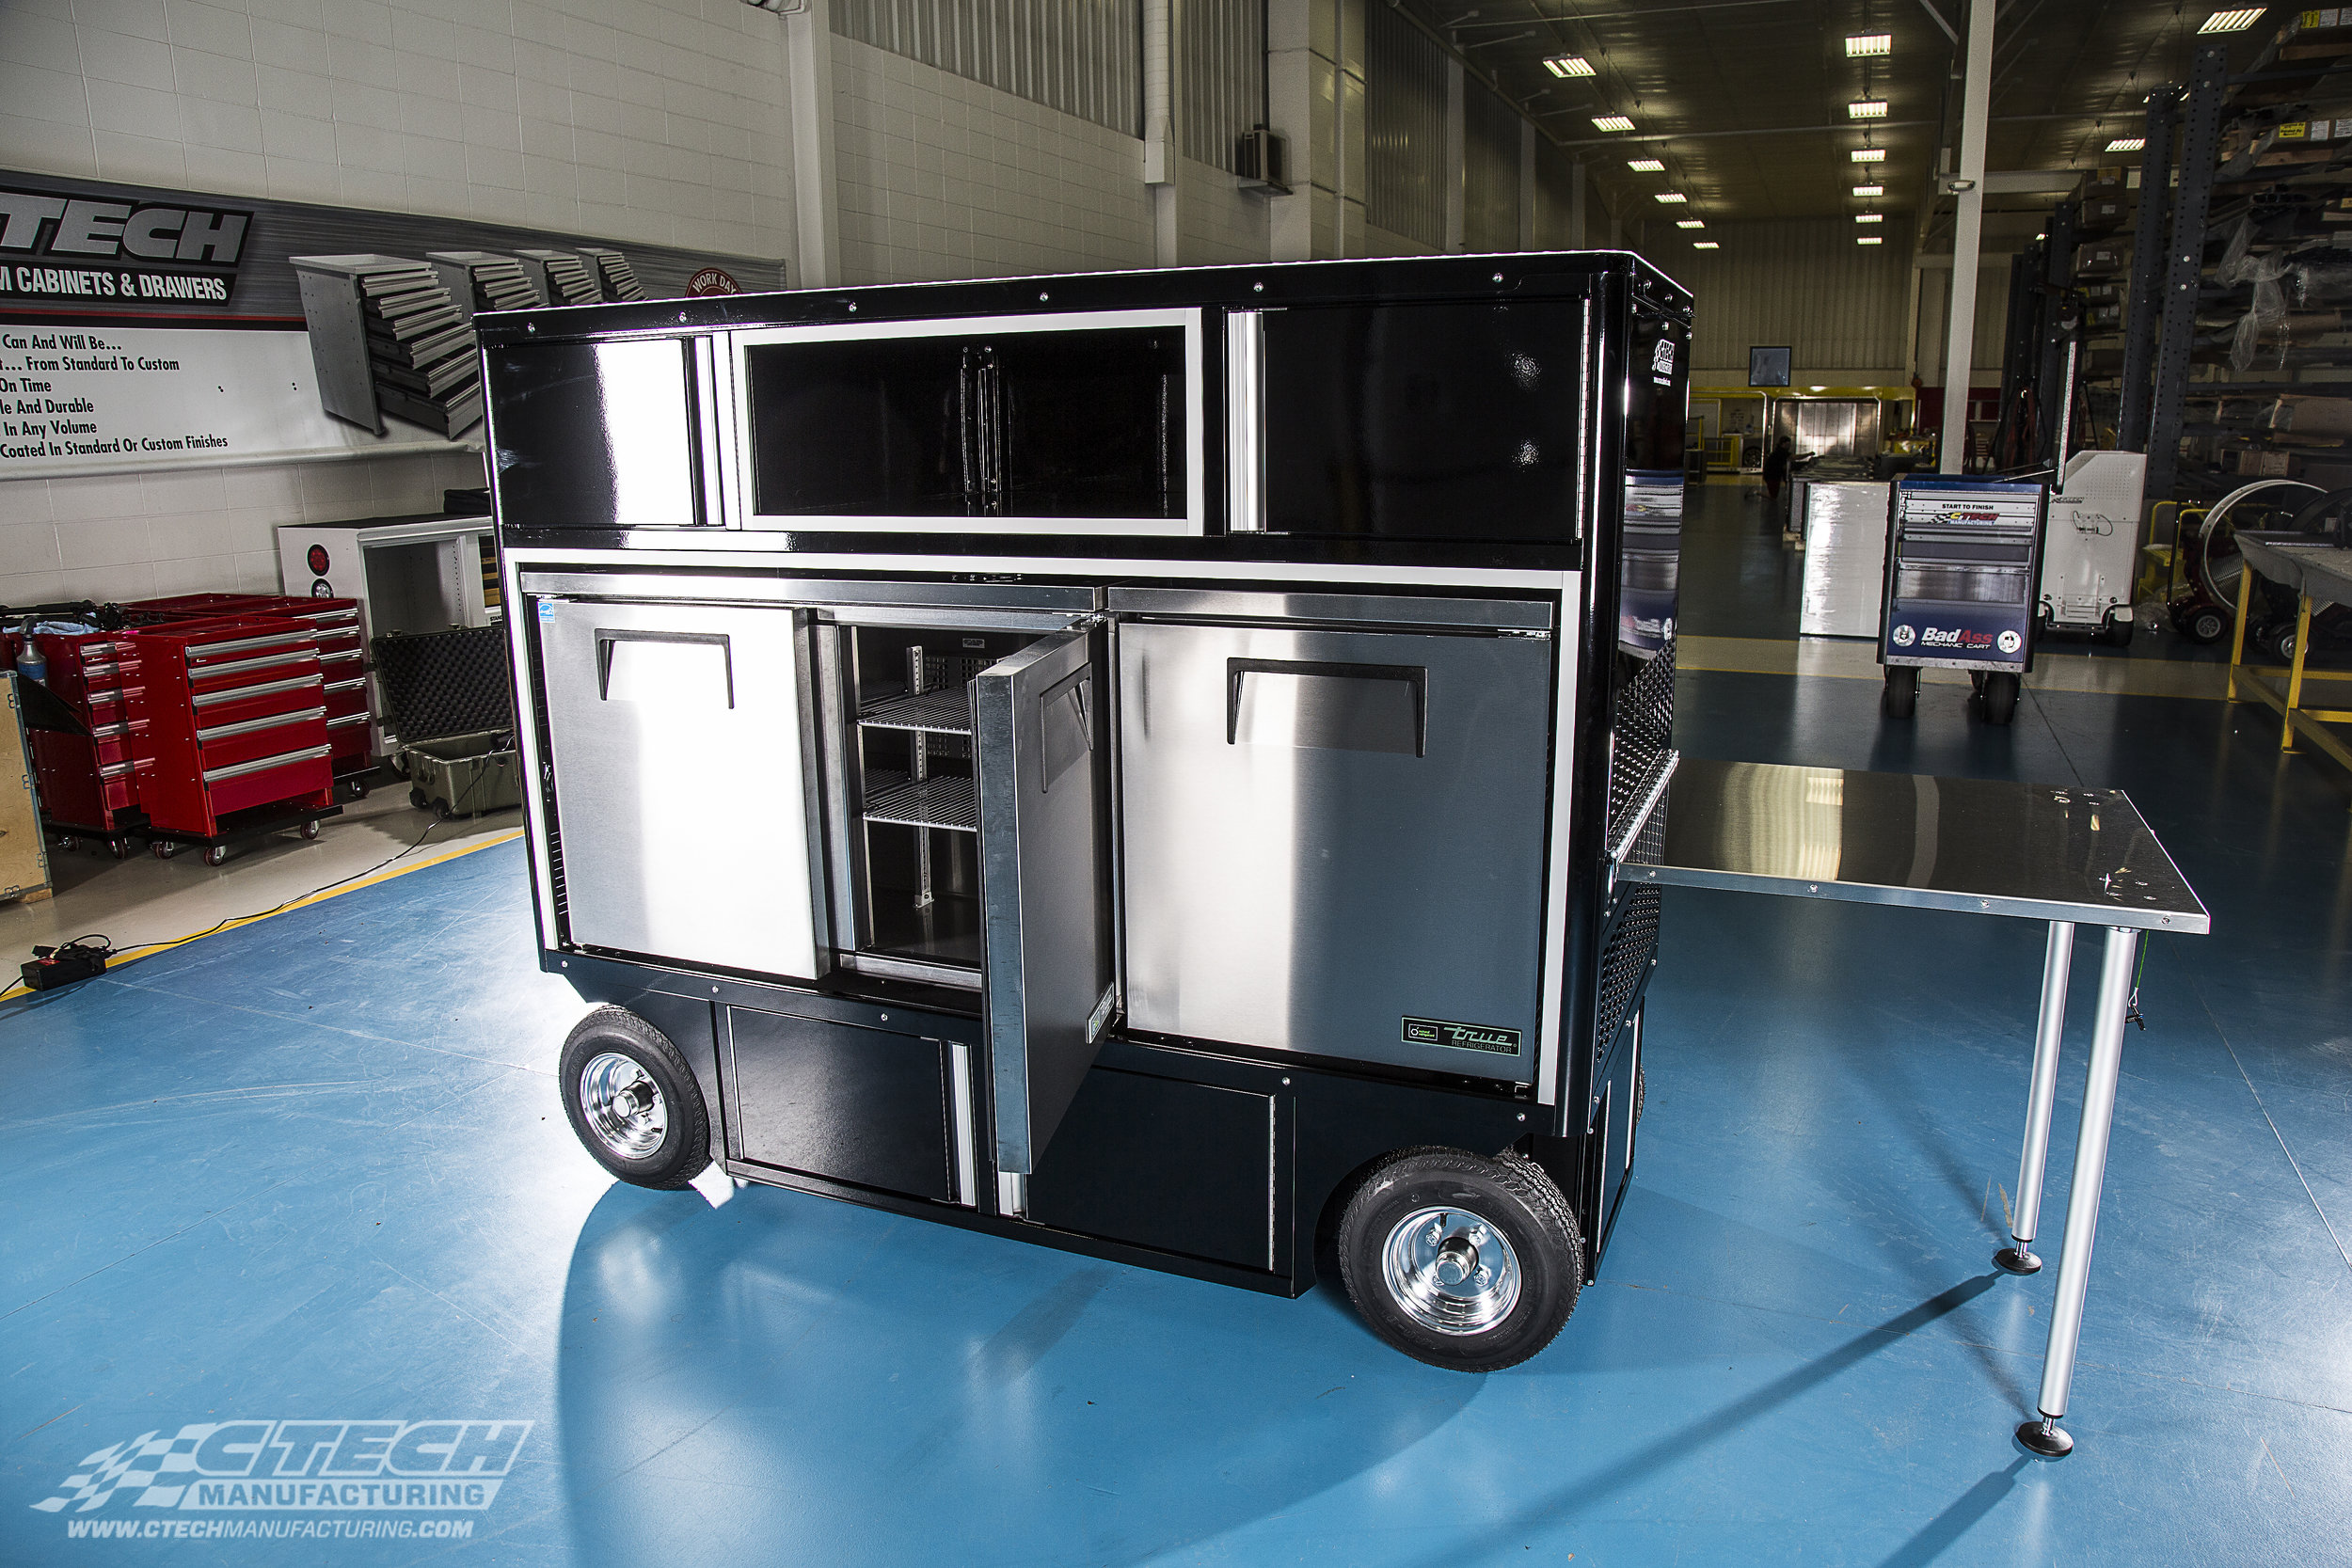 CTECH builds mobile Cooler Carts fitted with with name-brand refrigeration units like True Mfg. You can now bring the hospitality directly to your team, guests, and sponsors to ensure everyone's satisfied and focused.